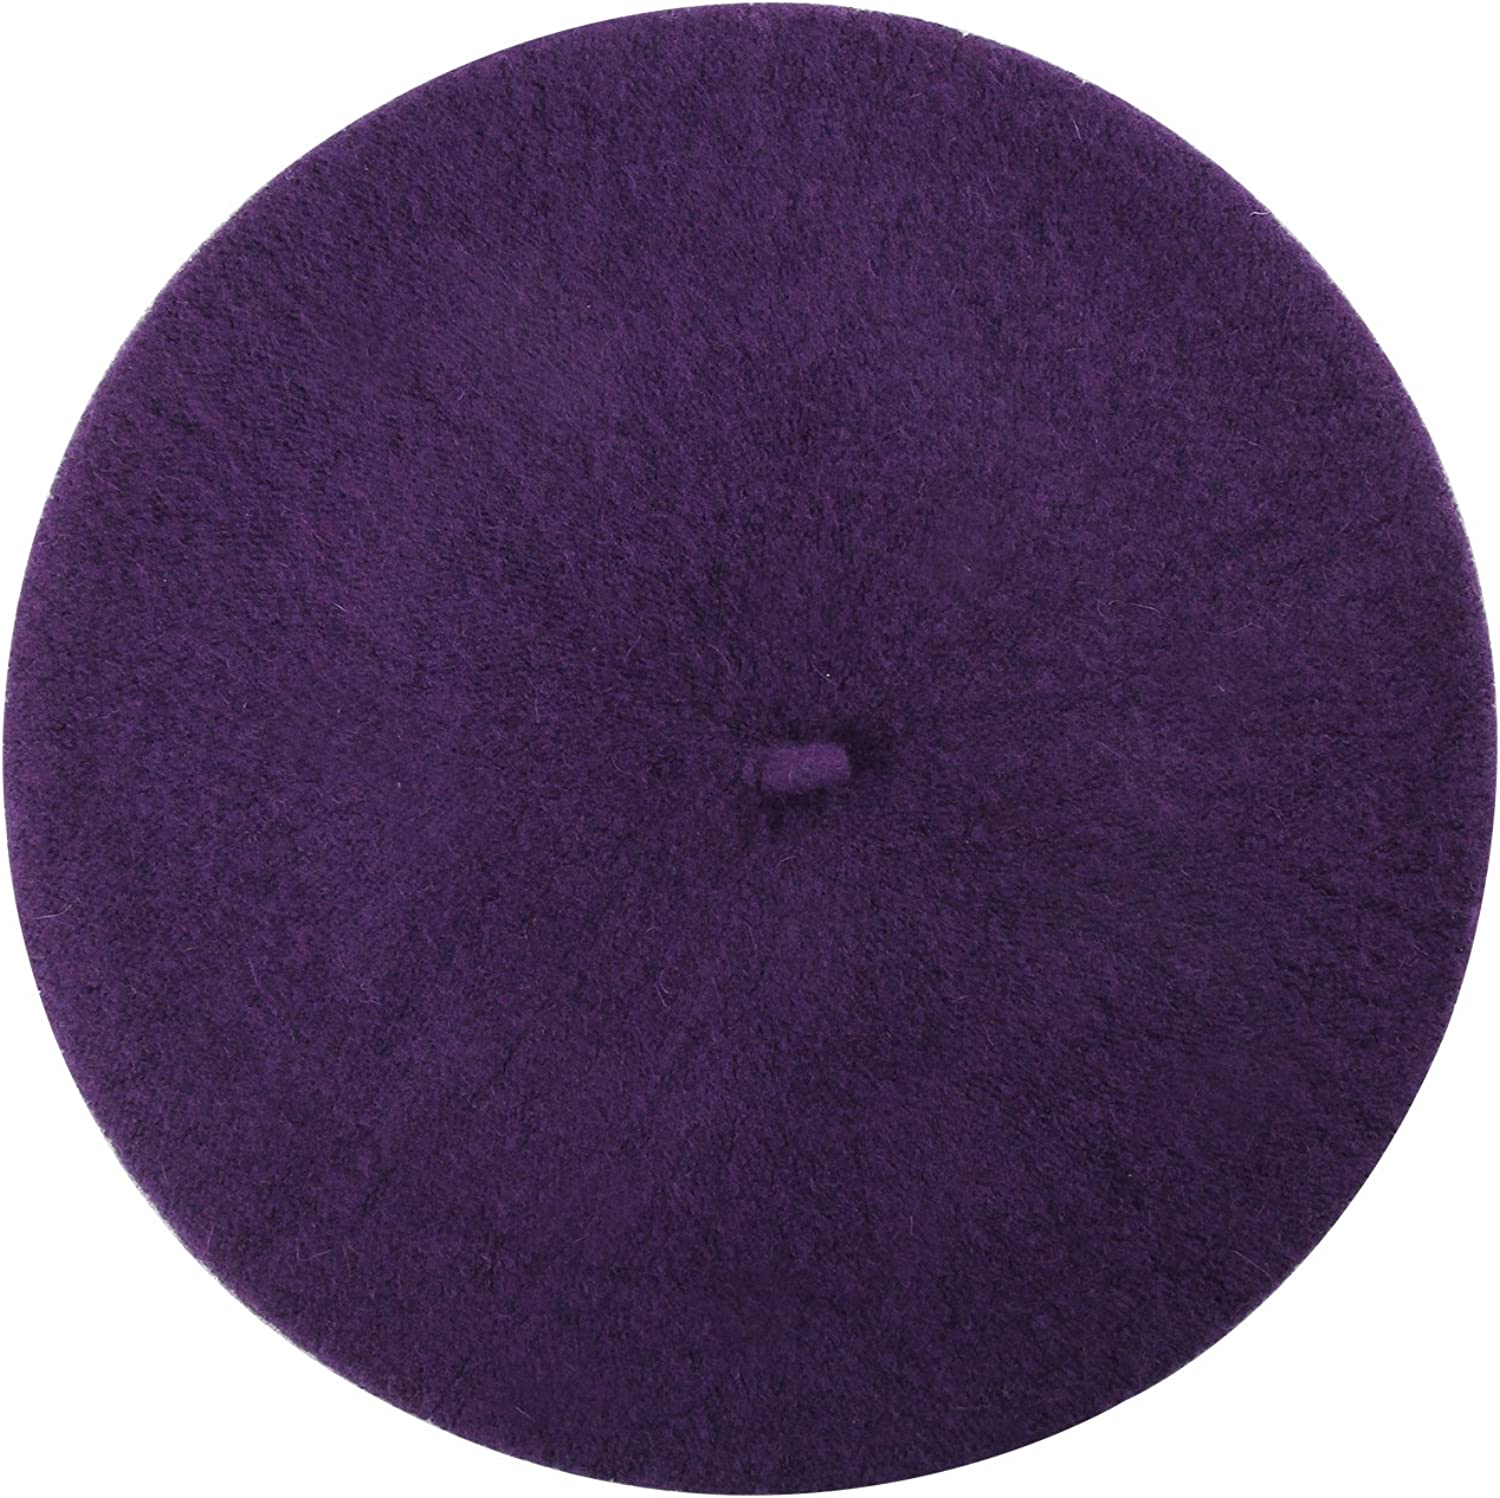 French Beret, Lightweight Casual Classic Solid Color Wool Beret